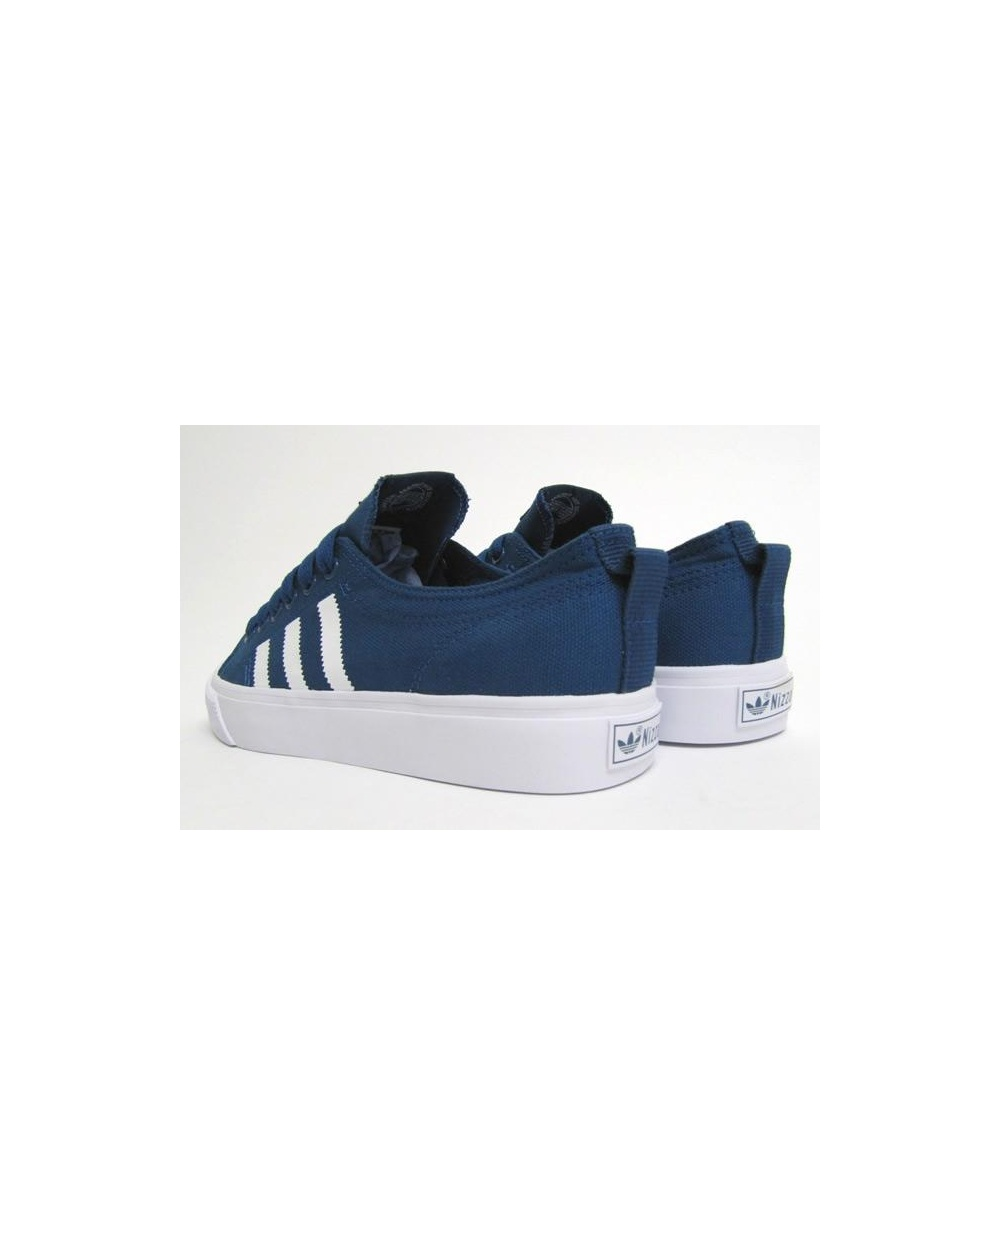 adidas trainer nizza